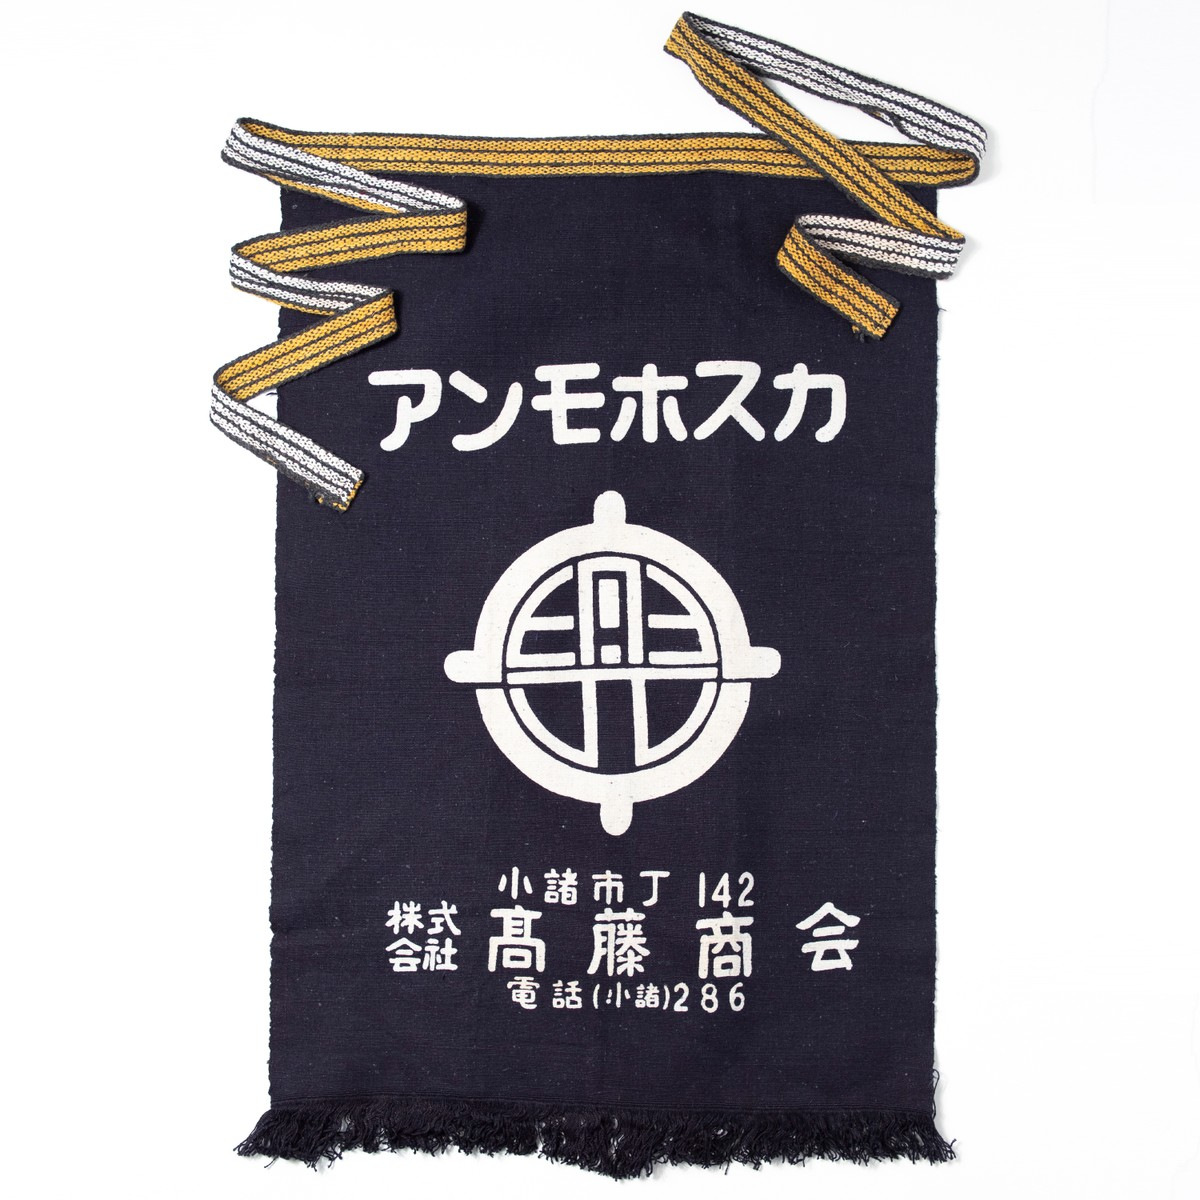 Photo of Vintage Maekake Apron: Anmohoska